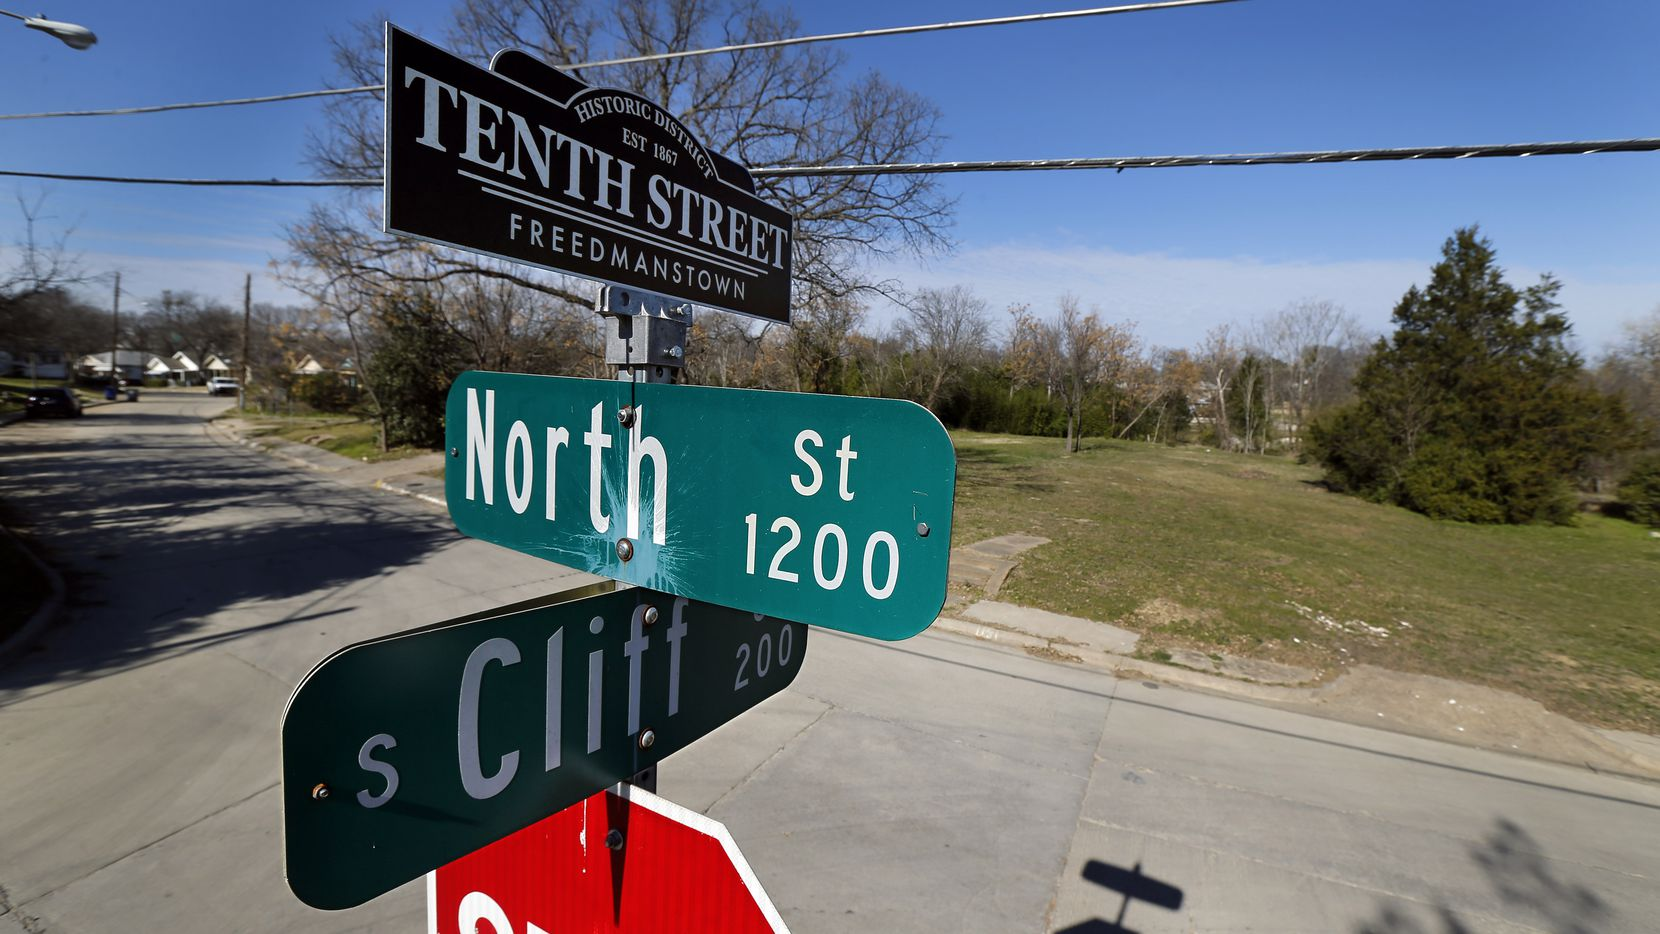 A street sign topper reminds residents of the historic Tenth Street Freedmanstown east of I-35E in the Oak Cliff area of Dallas, Monday, January 28, 2019. (Tom Fox/The Dallas Morning News)